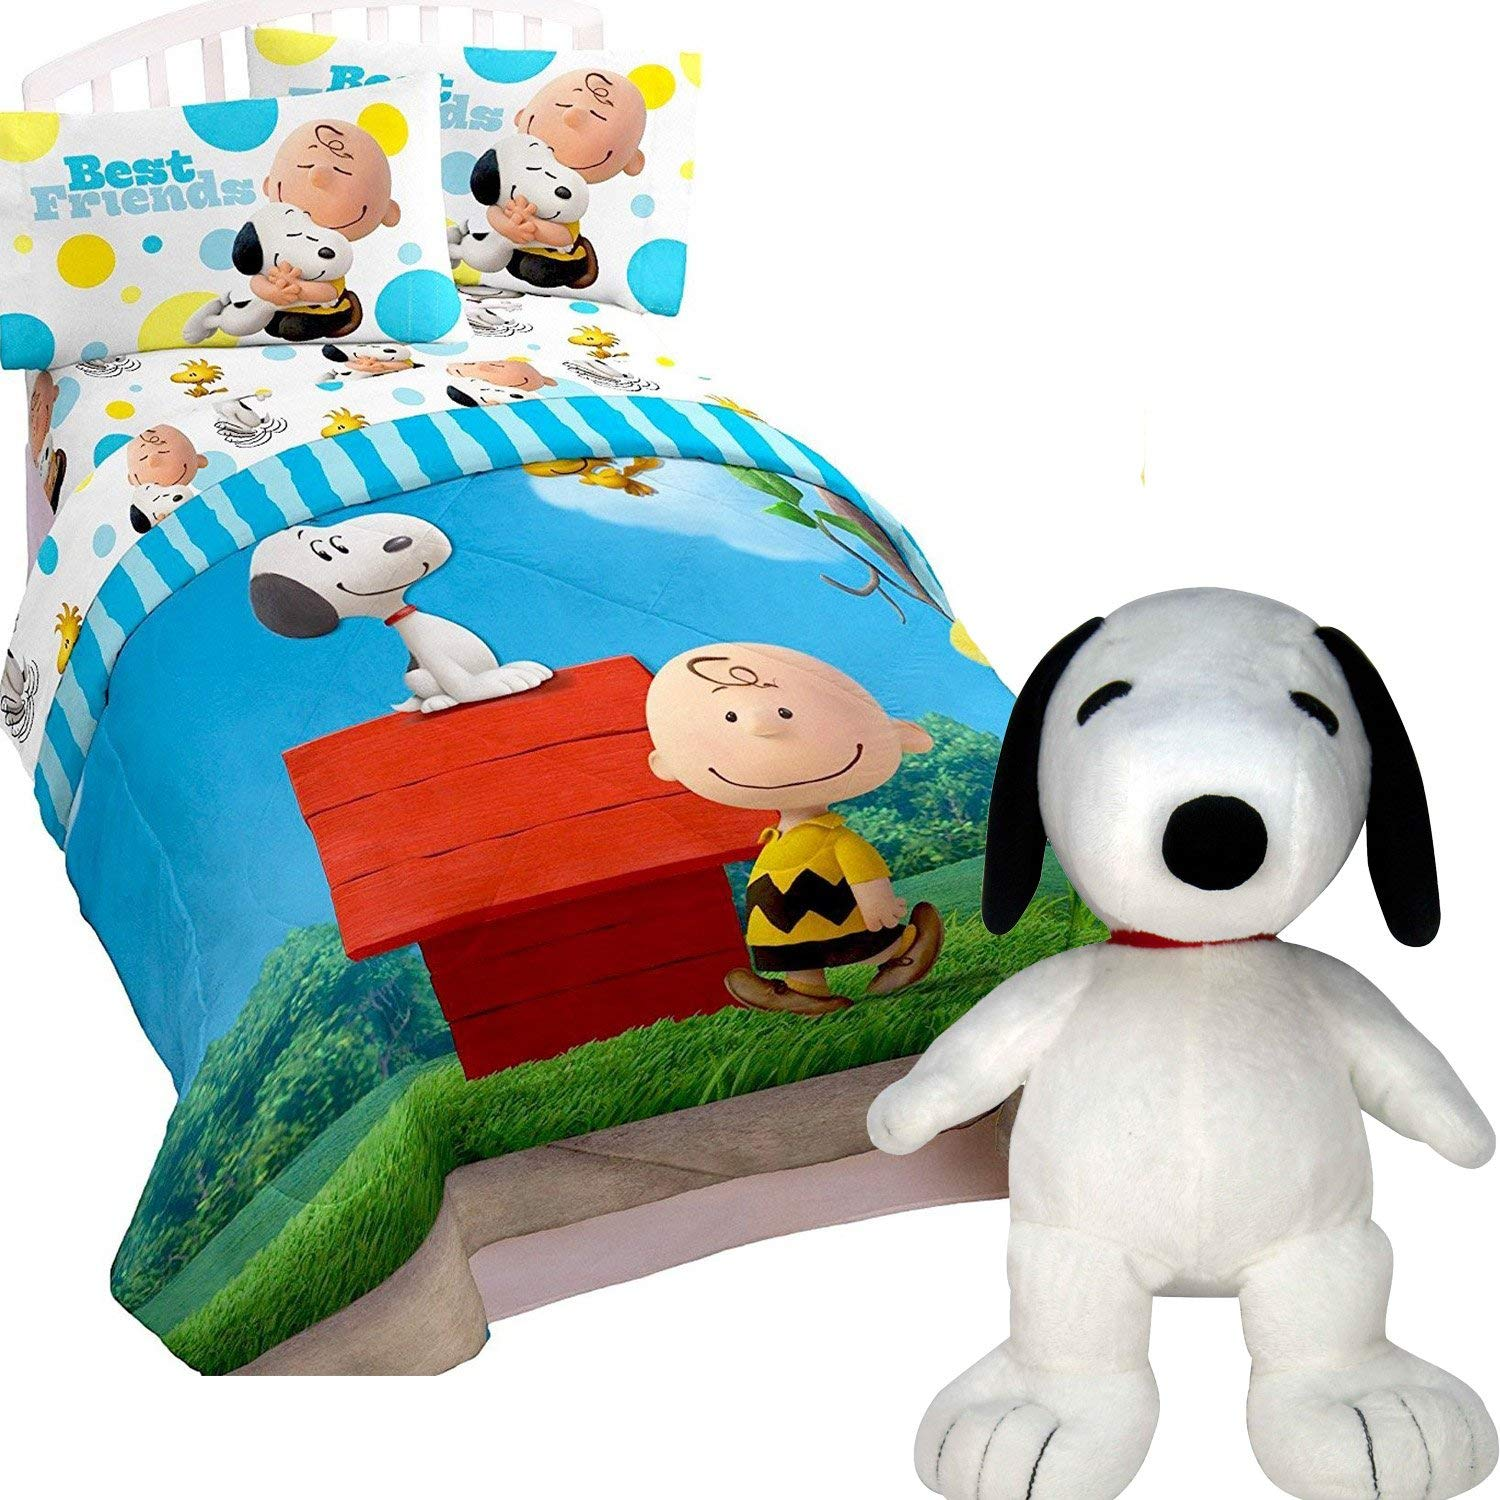 Cheap Snoopy Sheet Set Find Snoopy Sheet Set Deals On Line At